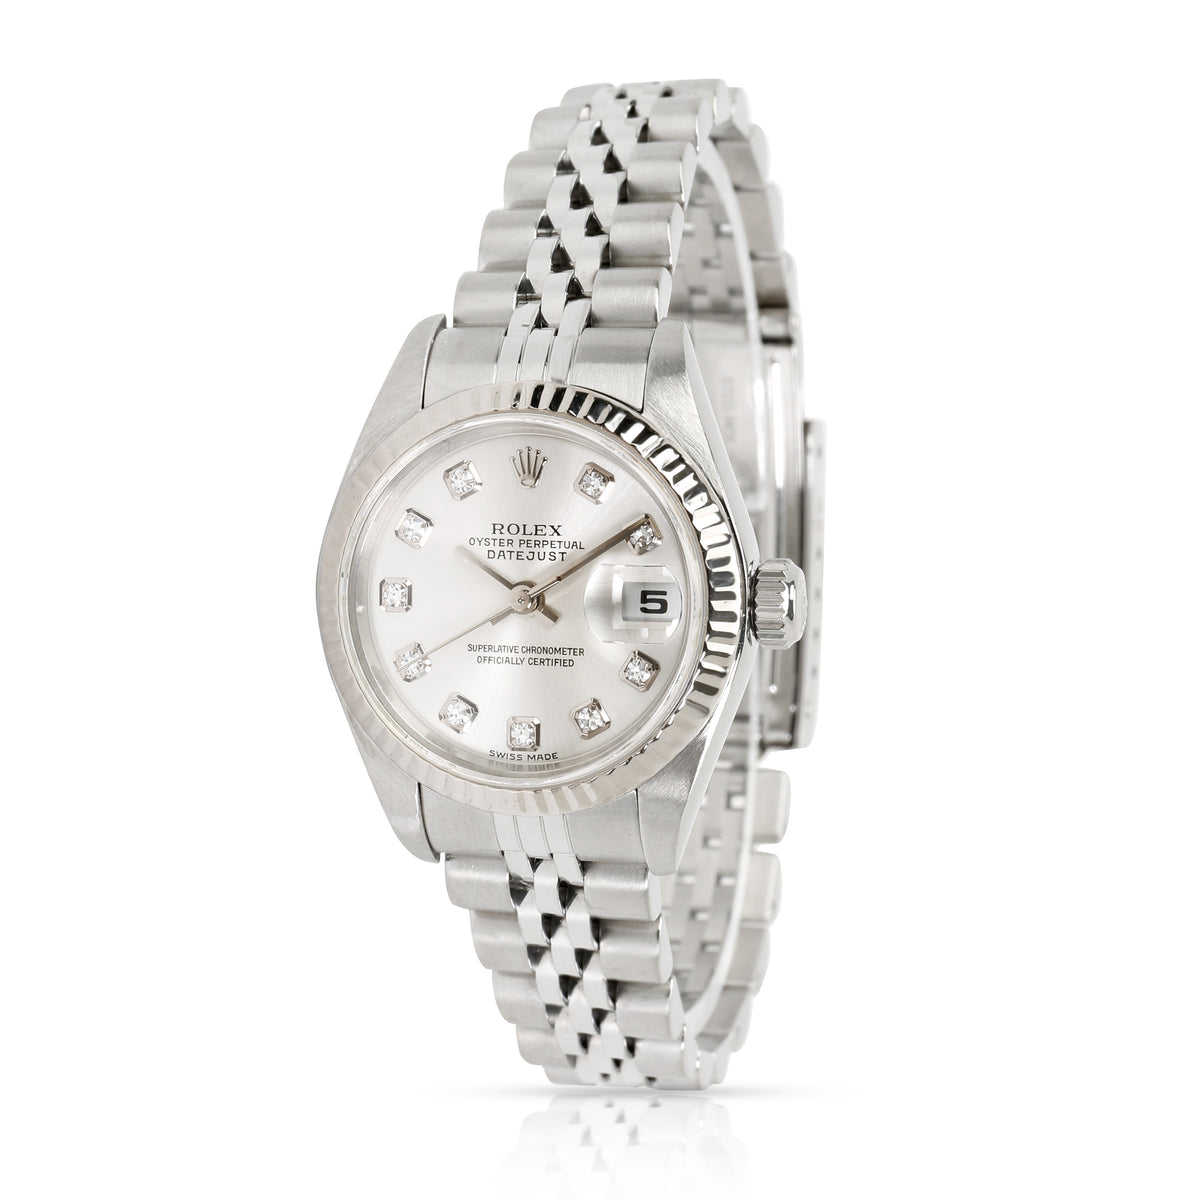 Rolex Datejust 79174 Women's Watch in 18kt Stainless Steel/White Gold